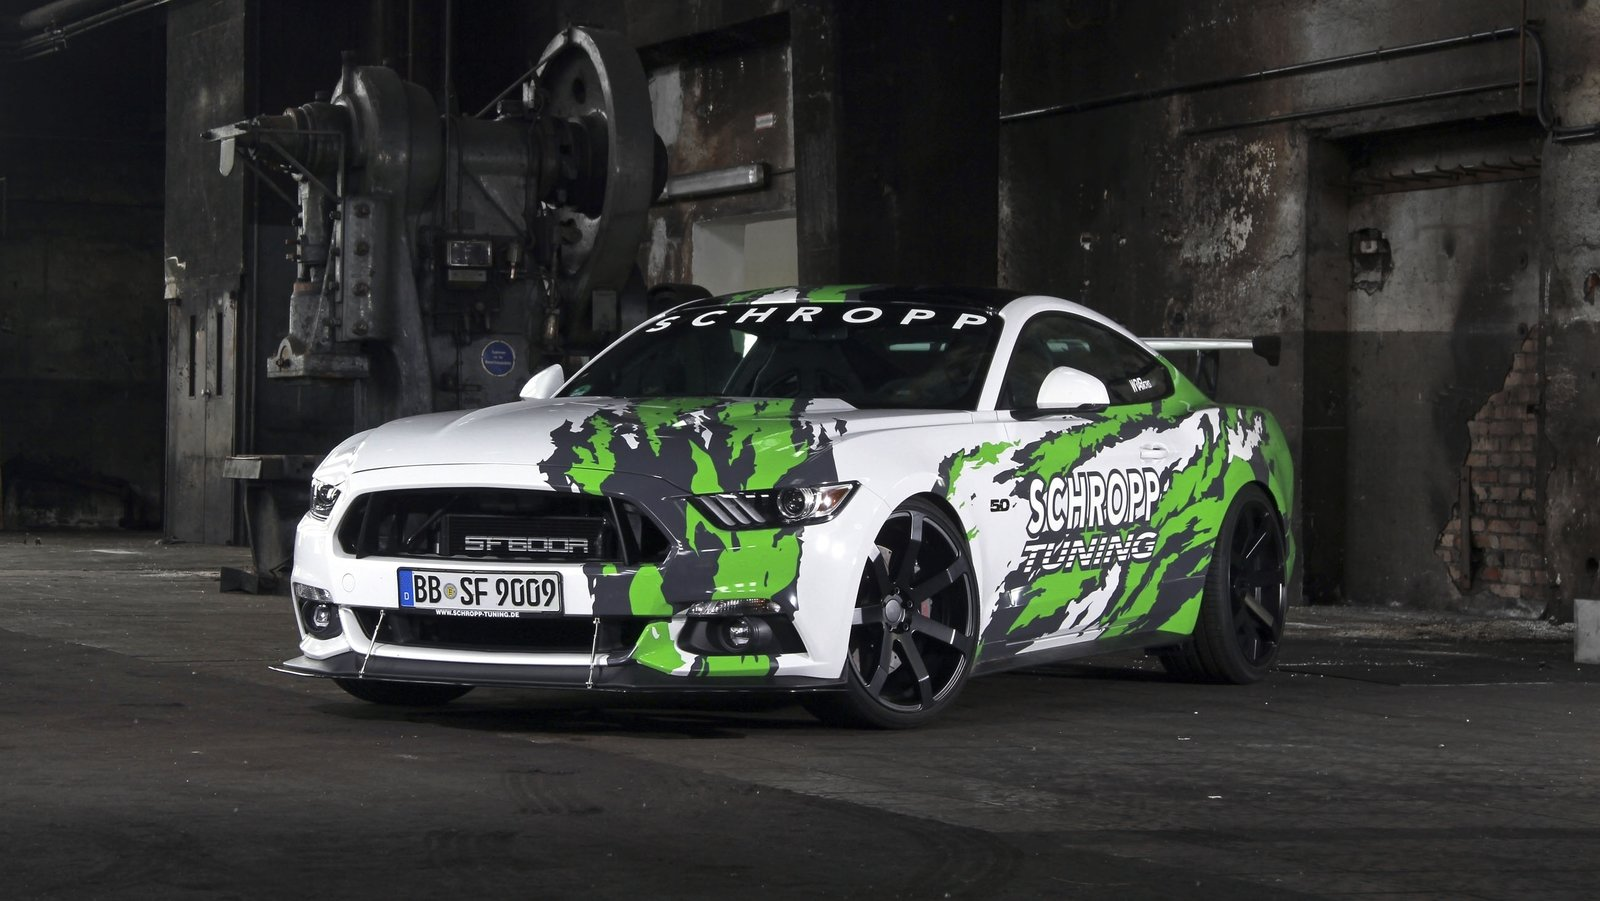 2017 ford mustang sf600r by schropp tuning review top speed. Black Bedroom Furniture Sets. Home Design Ideas